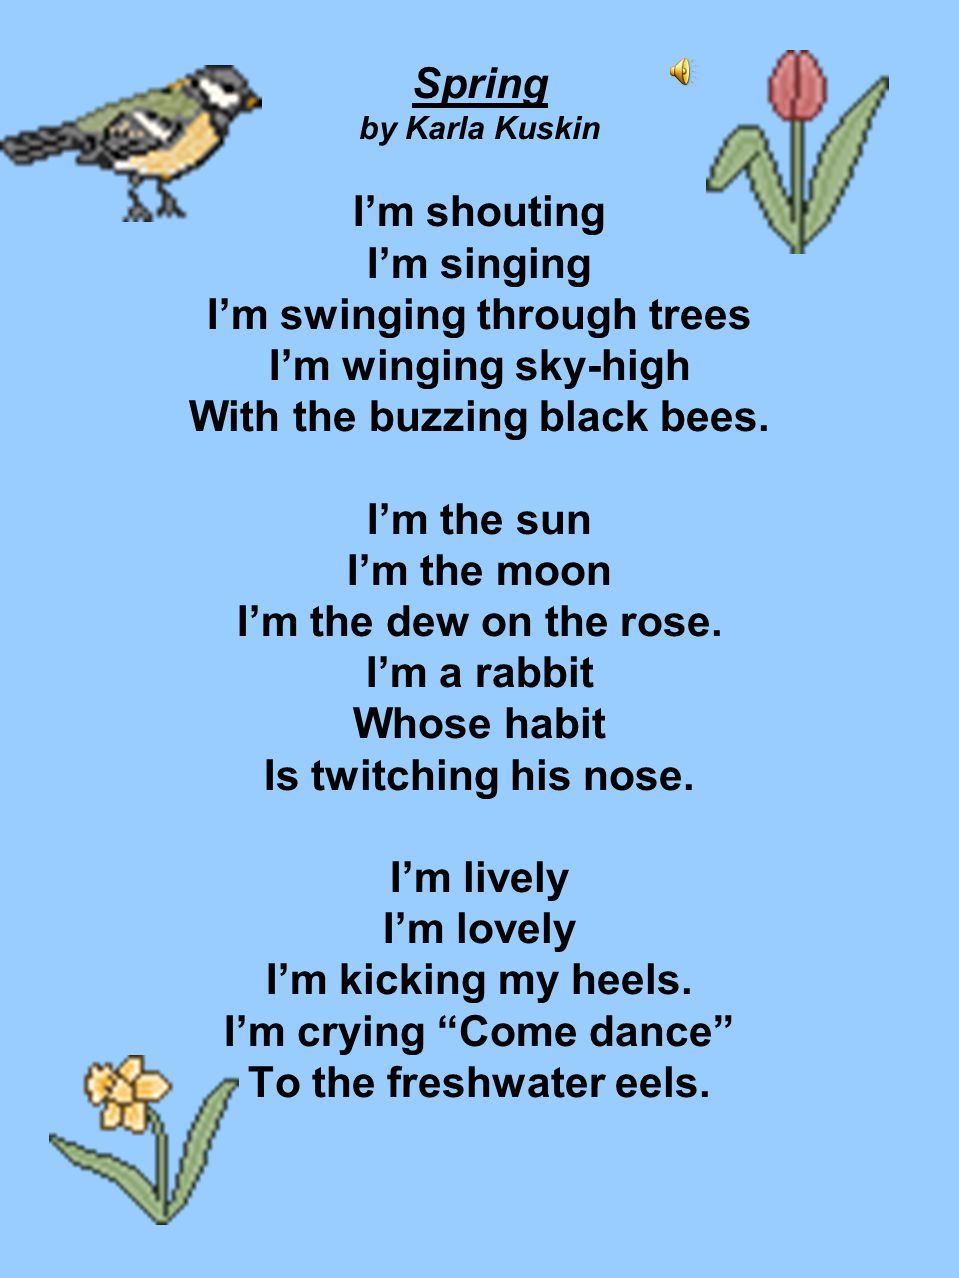 Spring by Karla Kuskin I'm shouting I'm singing I'm swinging through trees I'm winging sky-high With the buzzing black bees.